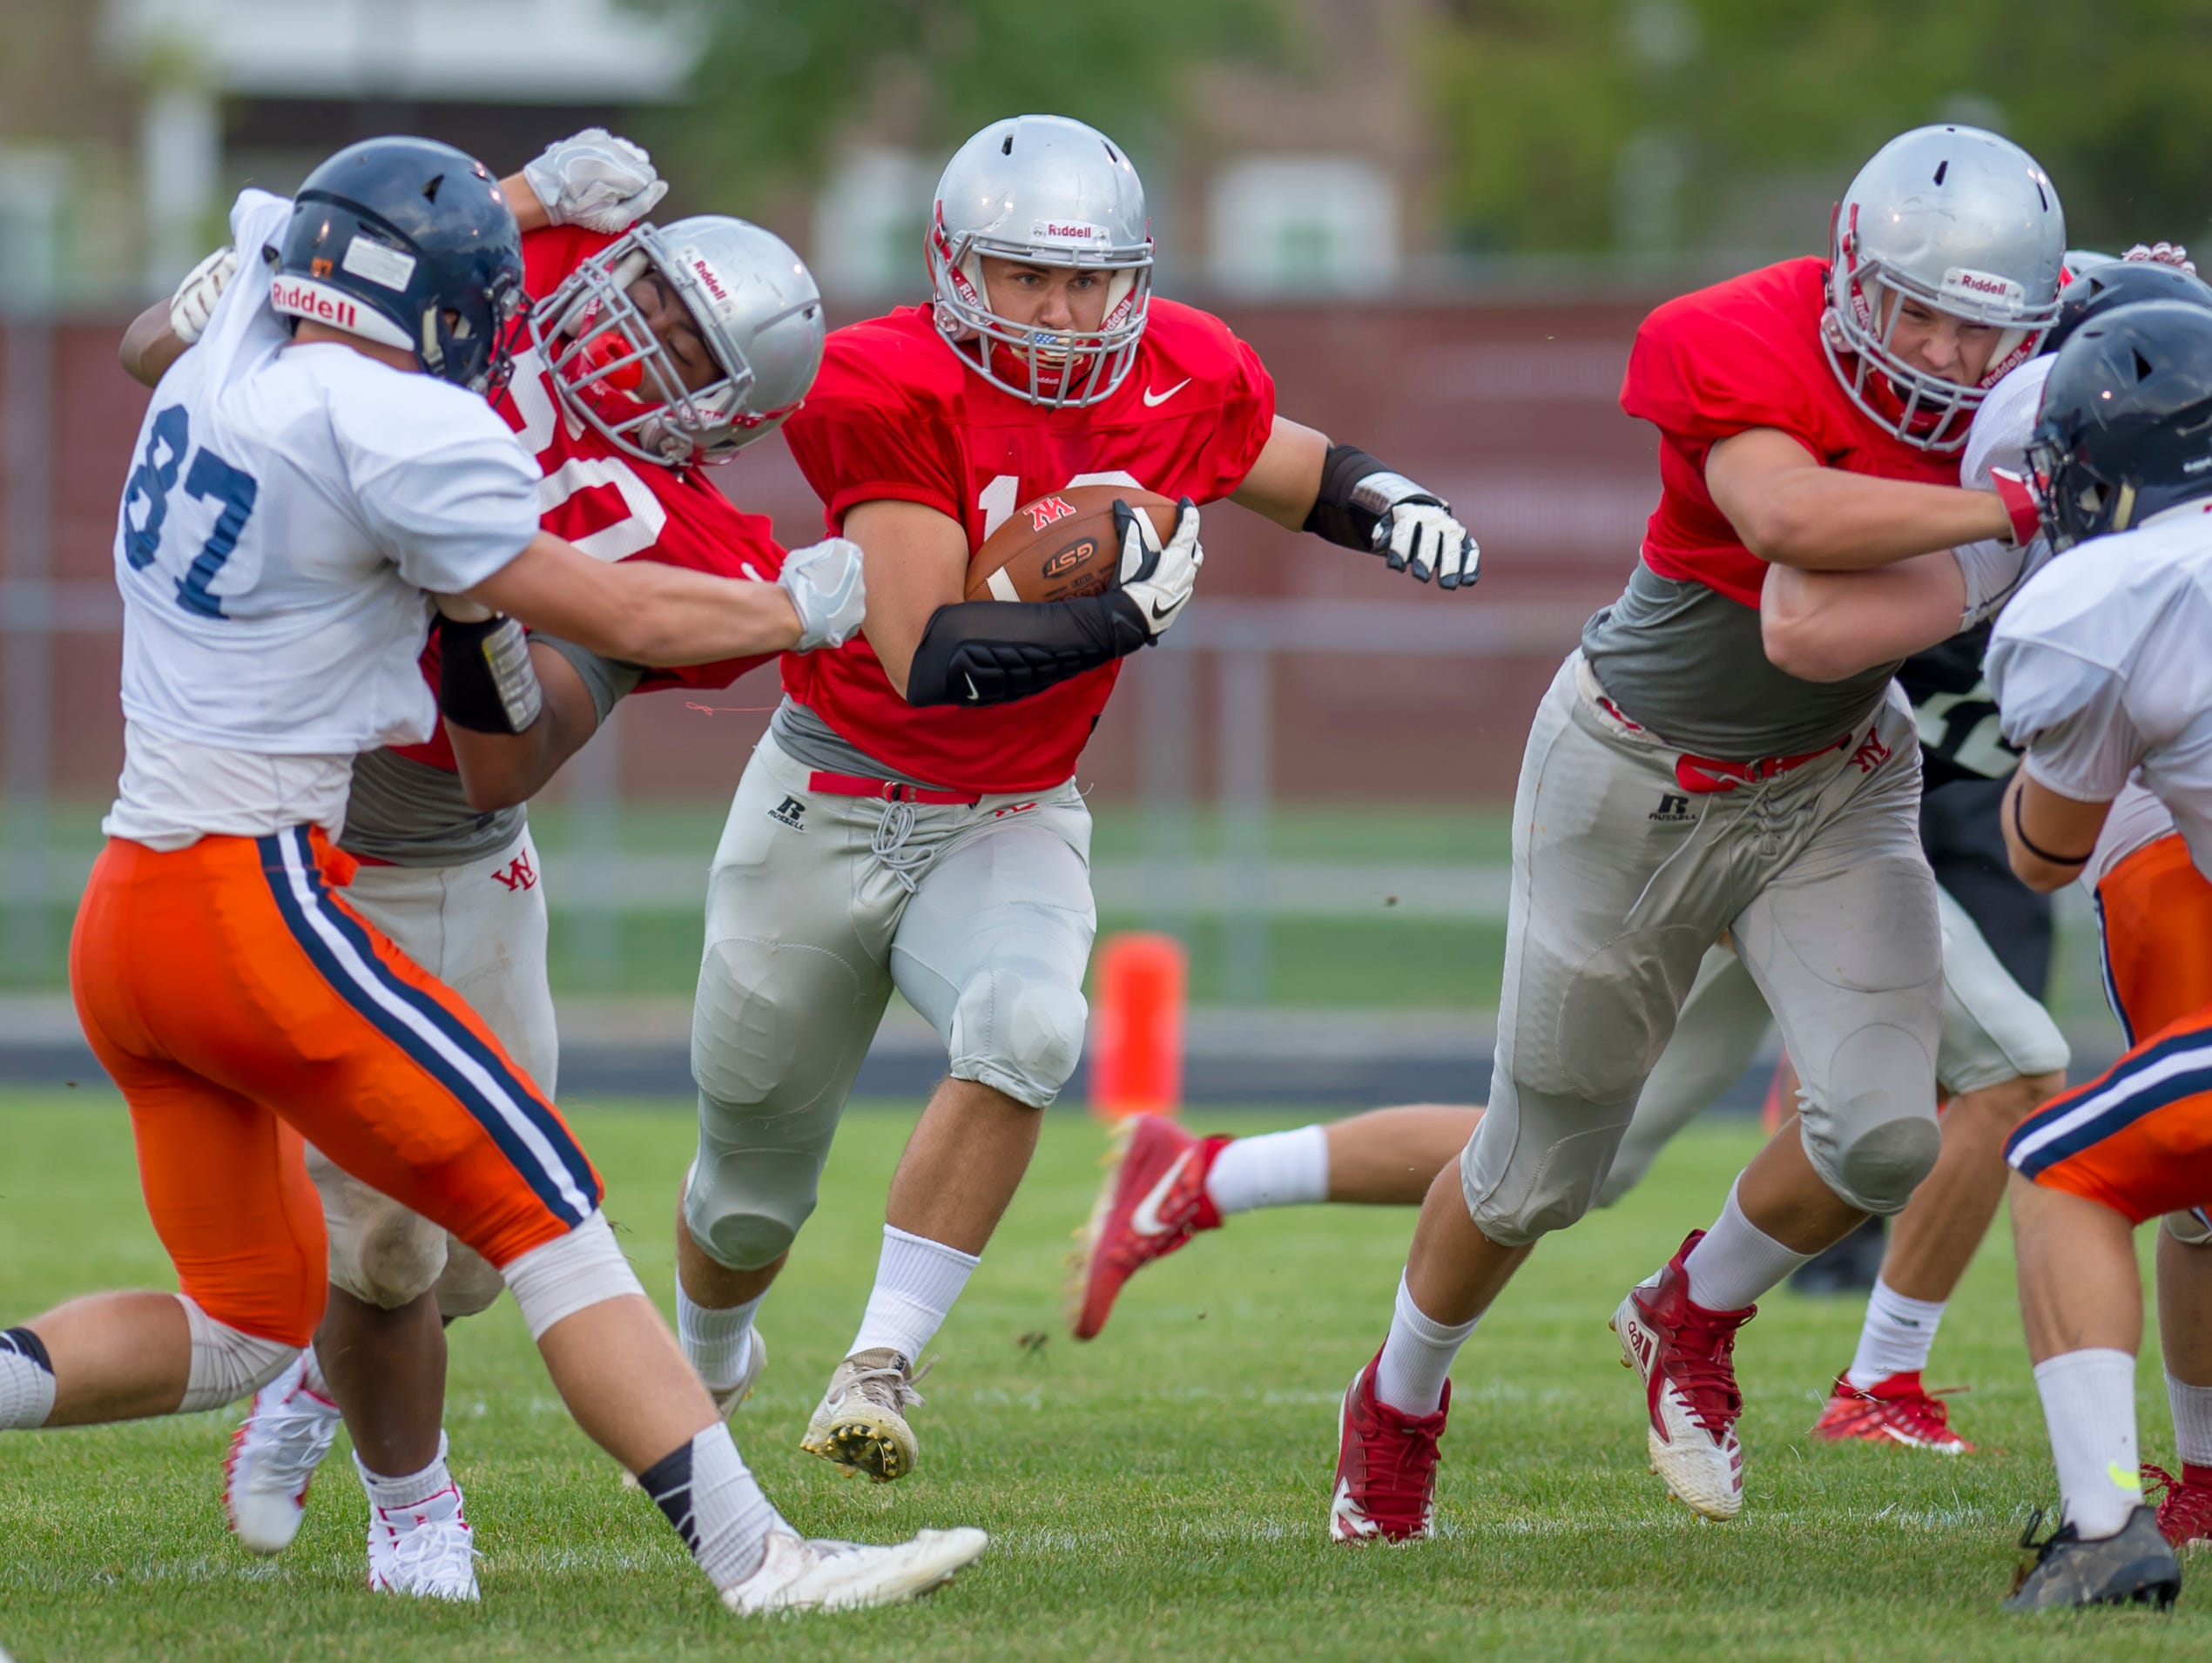 Sage Hood blasts through the line at the football scrimmage between the Harrison Raiders and the West Lafayette Red Devils from Gordon Straley Field